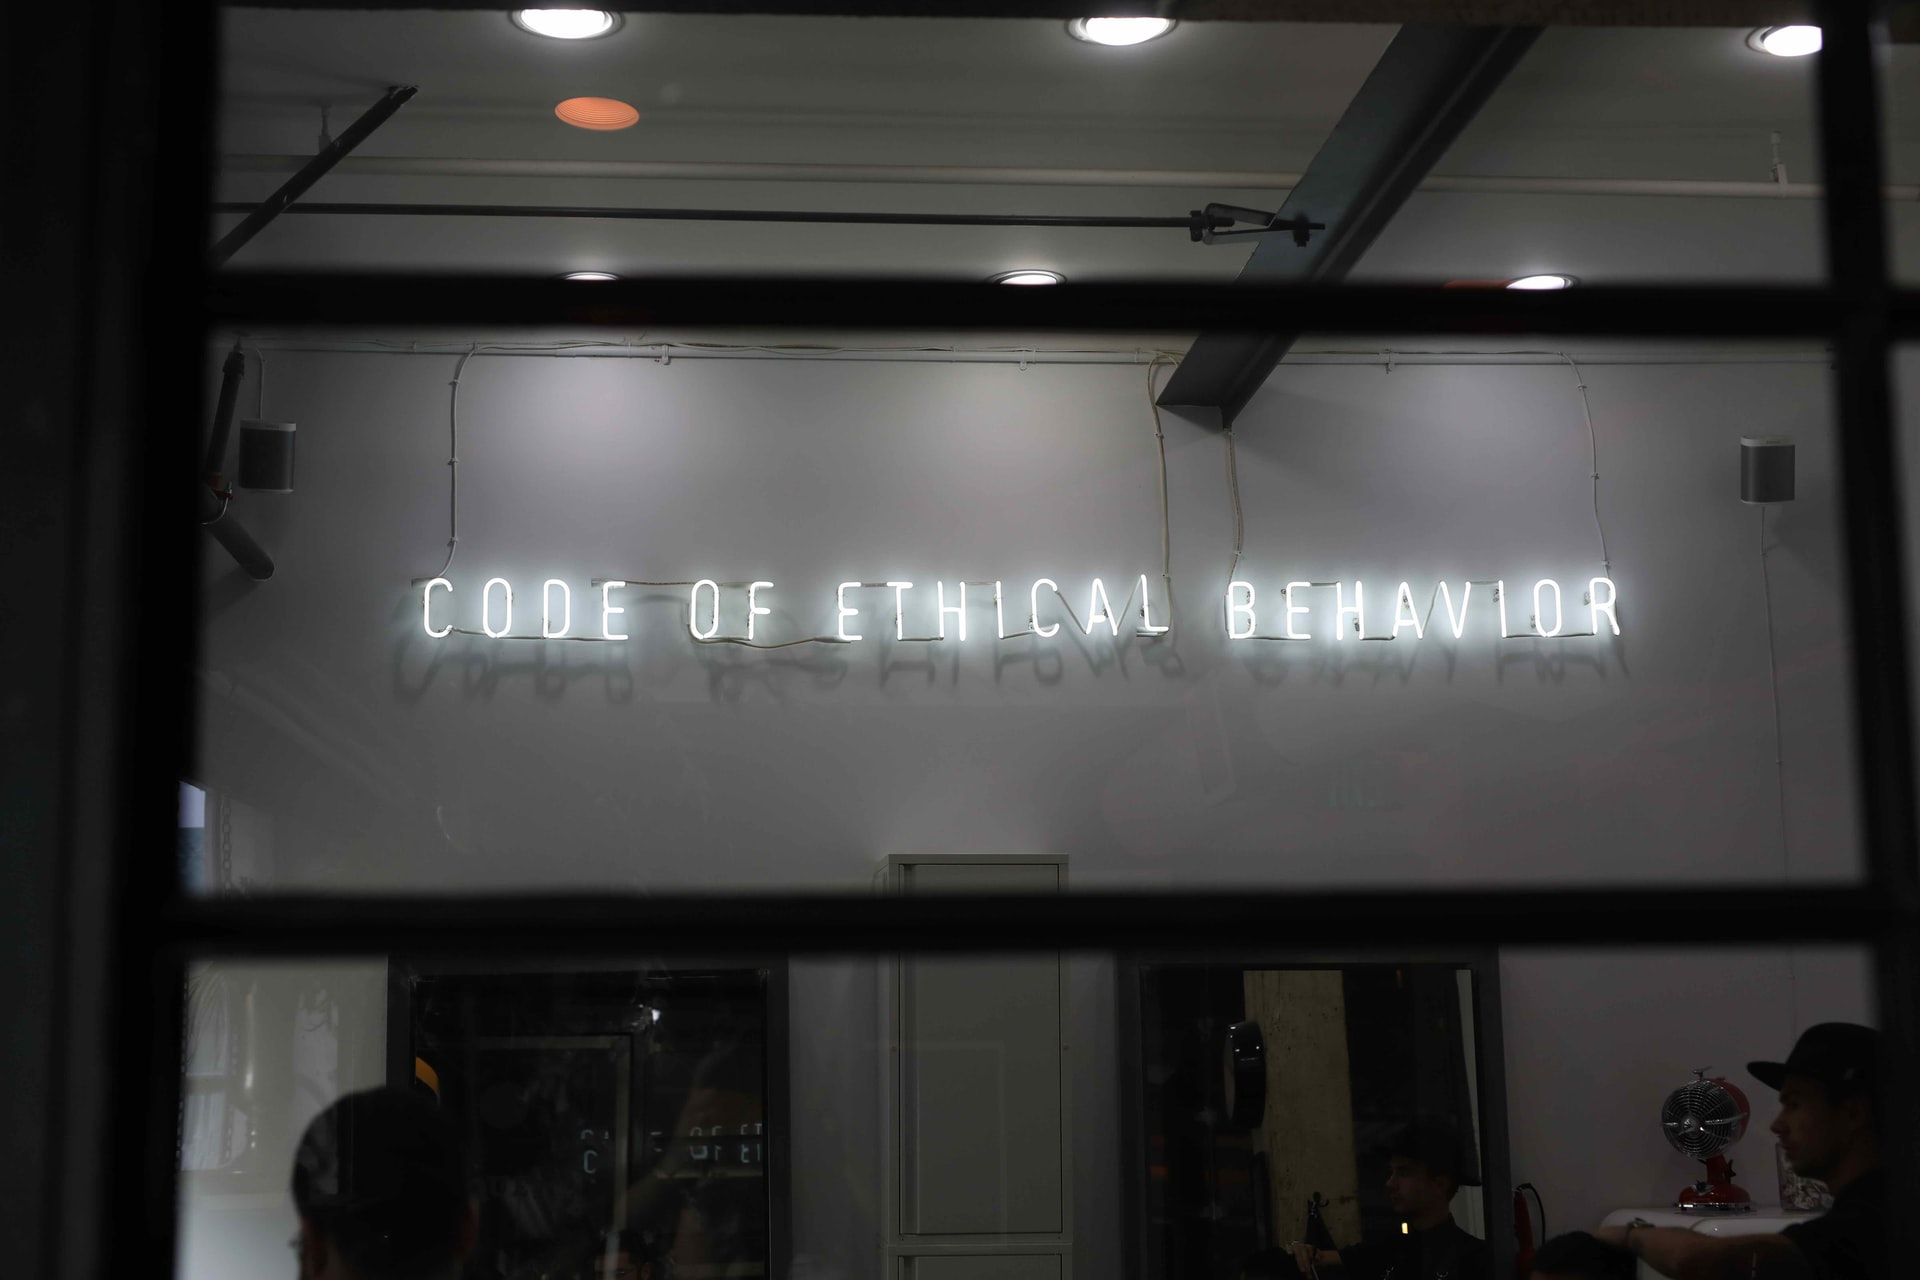 'Code of ethical behavior' neon sign - photo: Unsplash